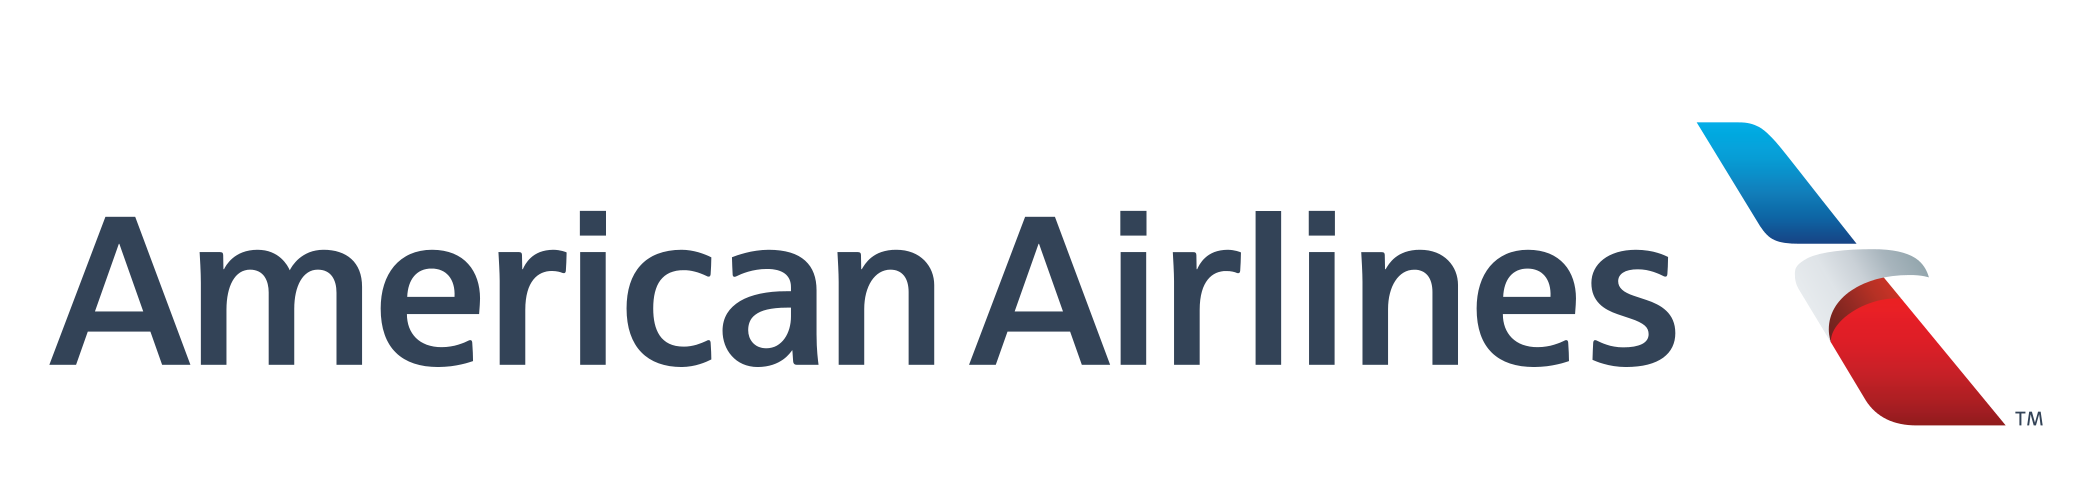 American-Airlines-logo-2013